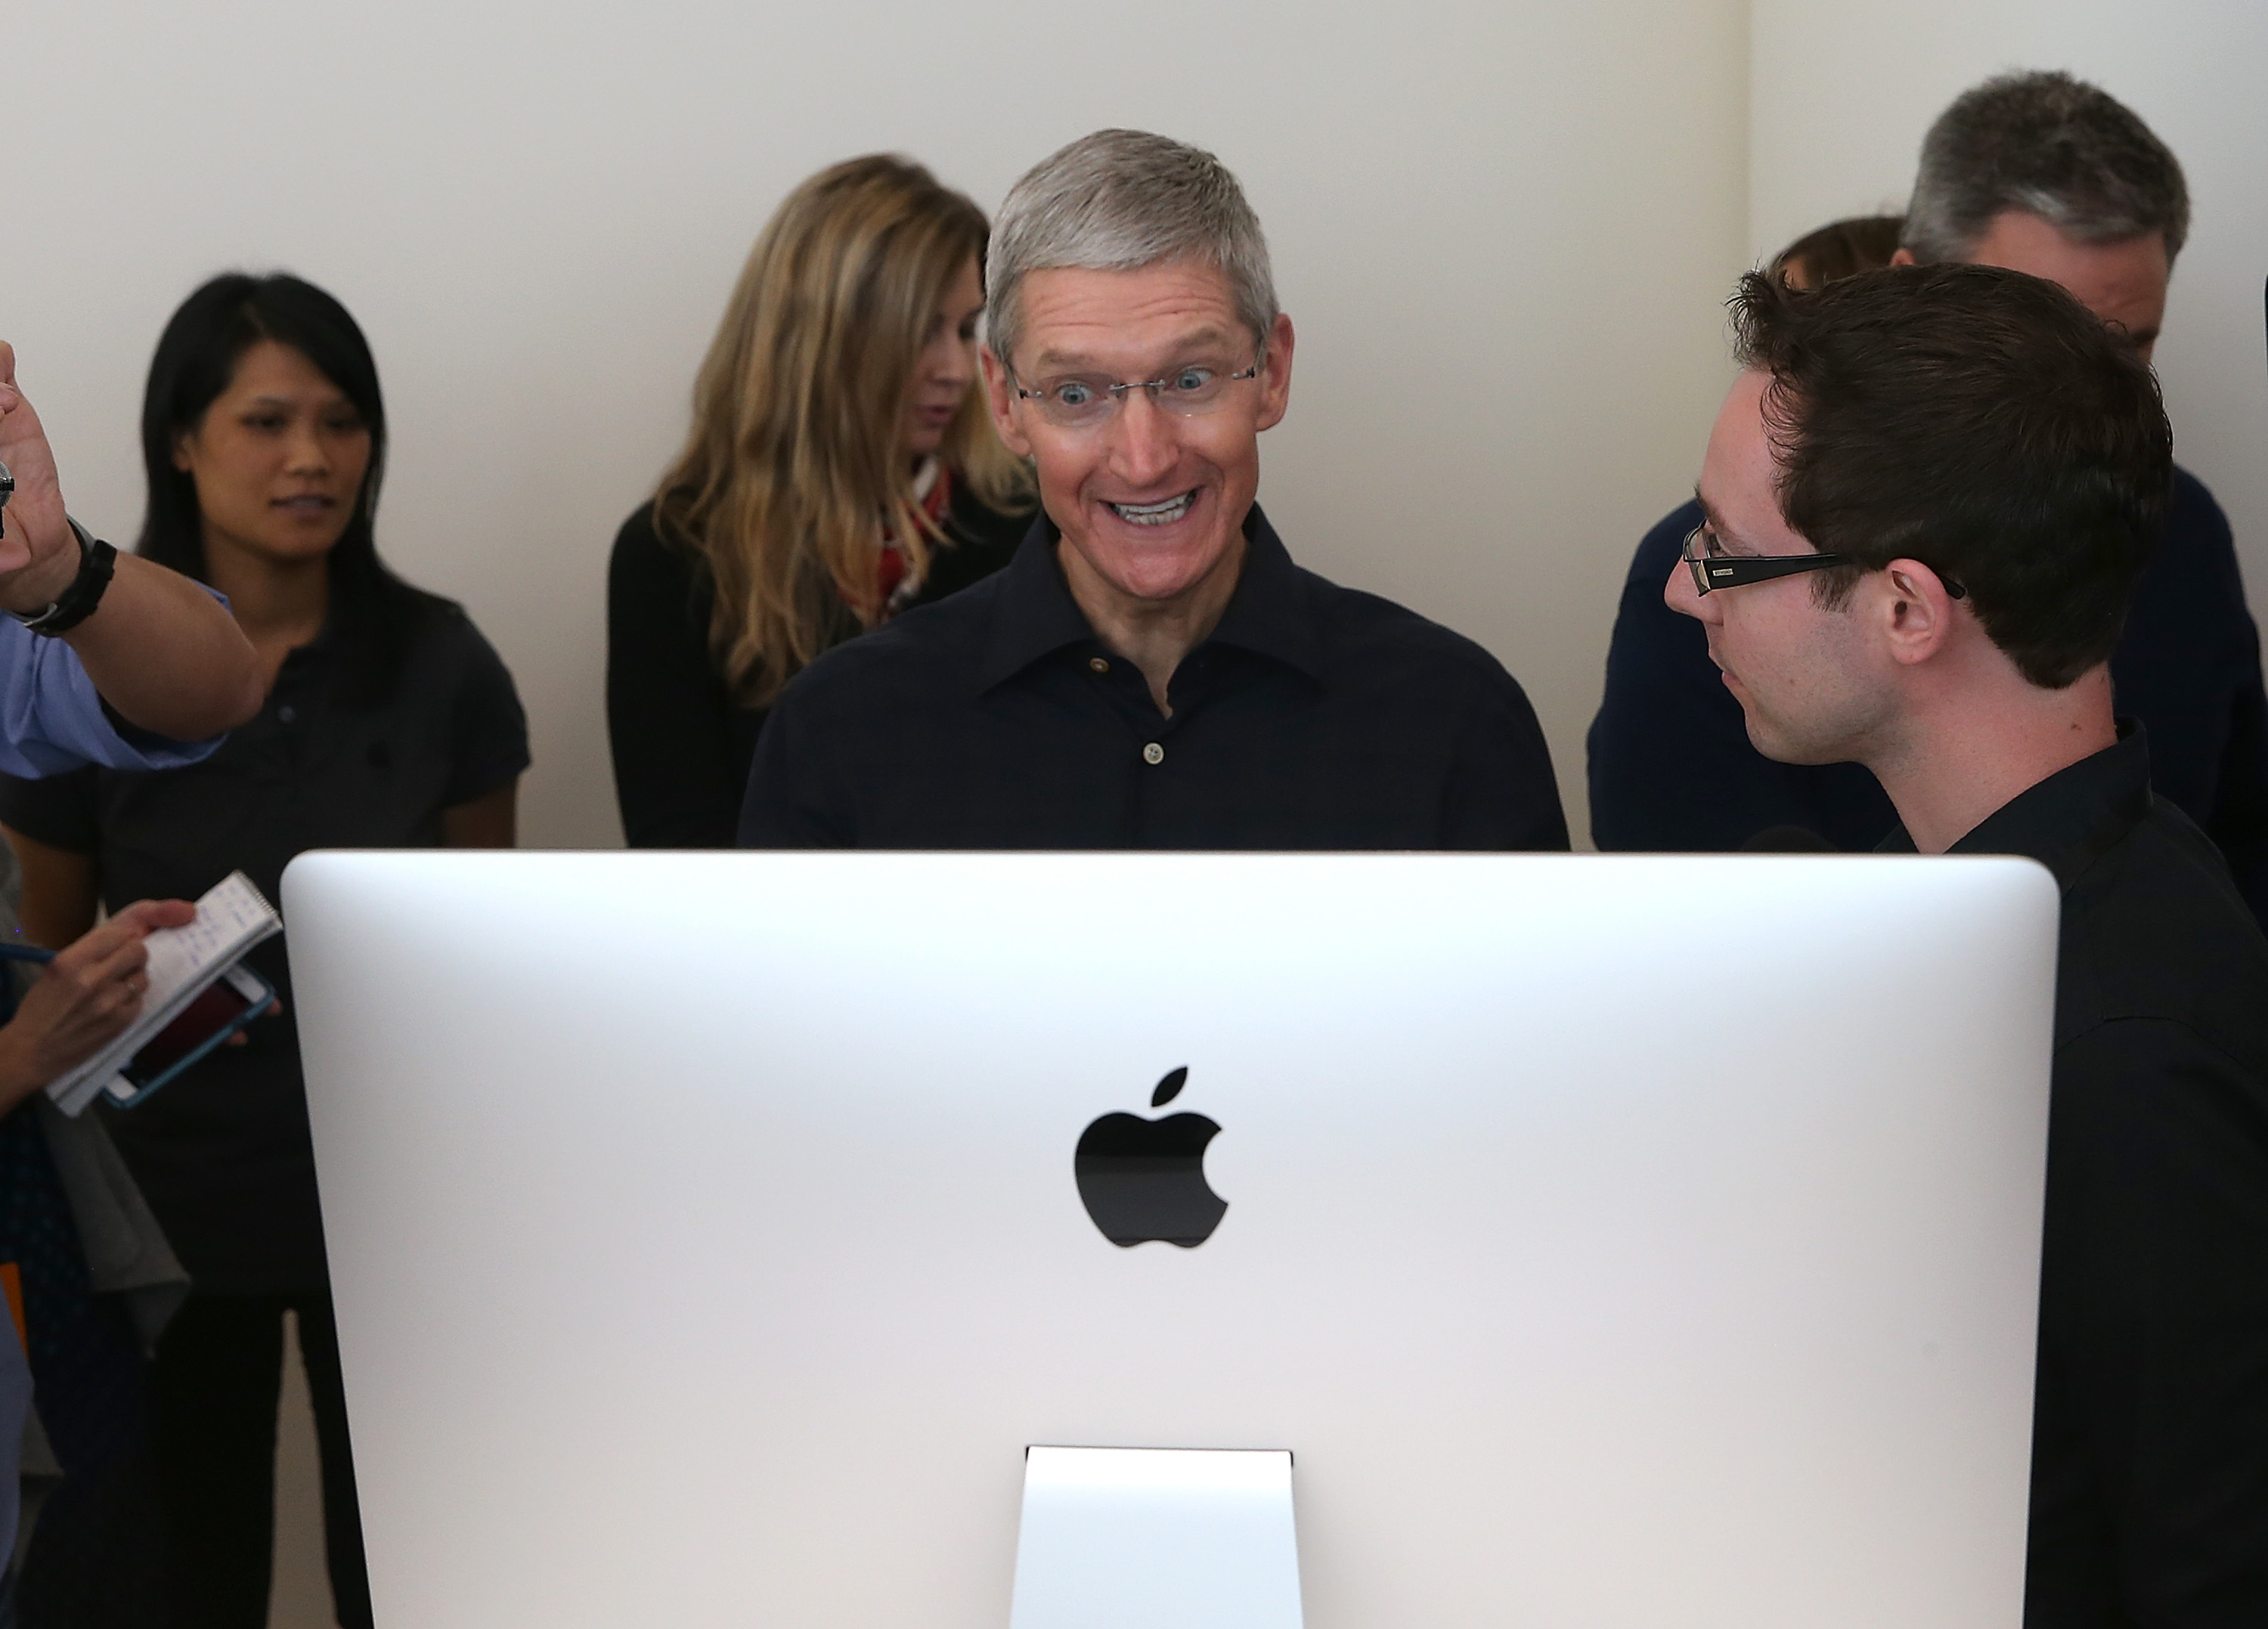 Apple CEO Tim Cook looks at the new 27 inch iMac with 5K retina display during an Apple special event on October 16, 2014 in Cupertino, California. (Photo by Justin Sullivan/Getty Images)